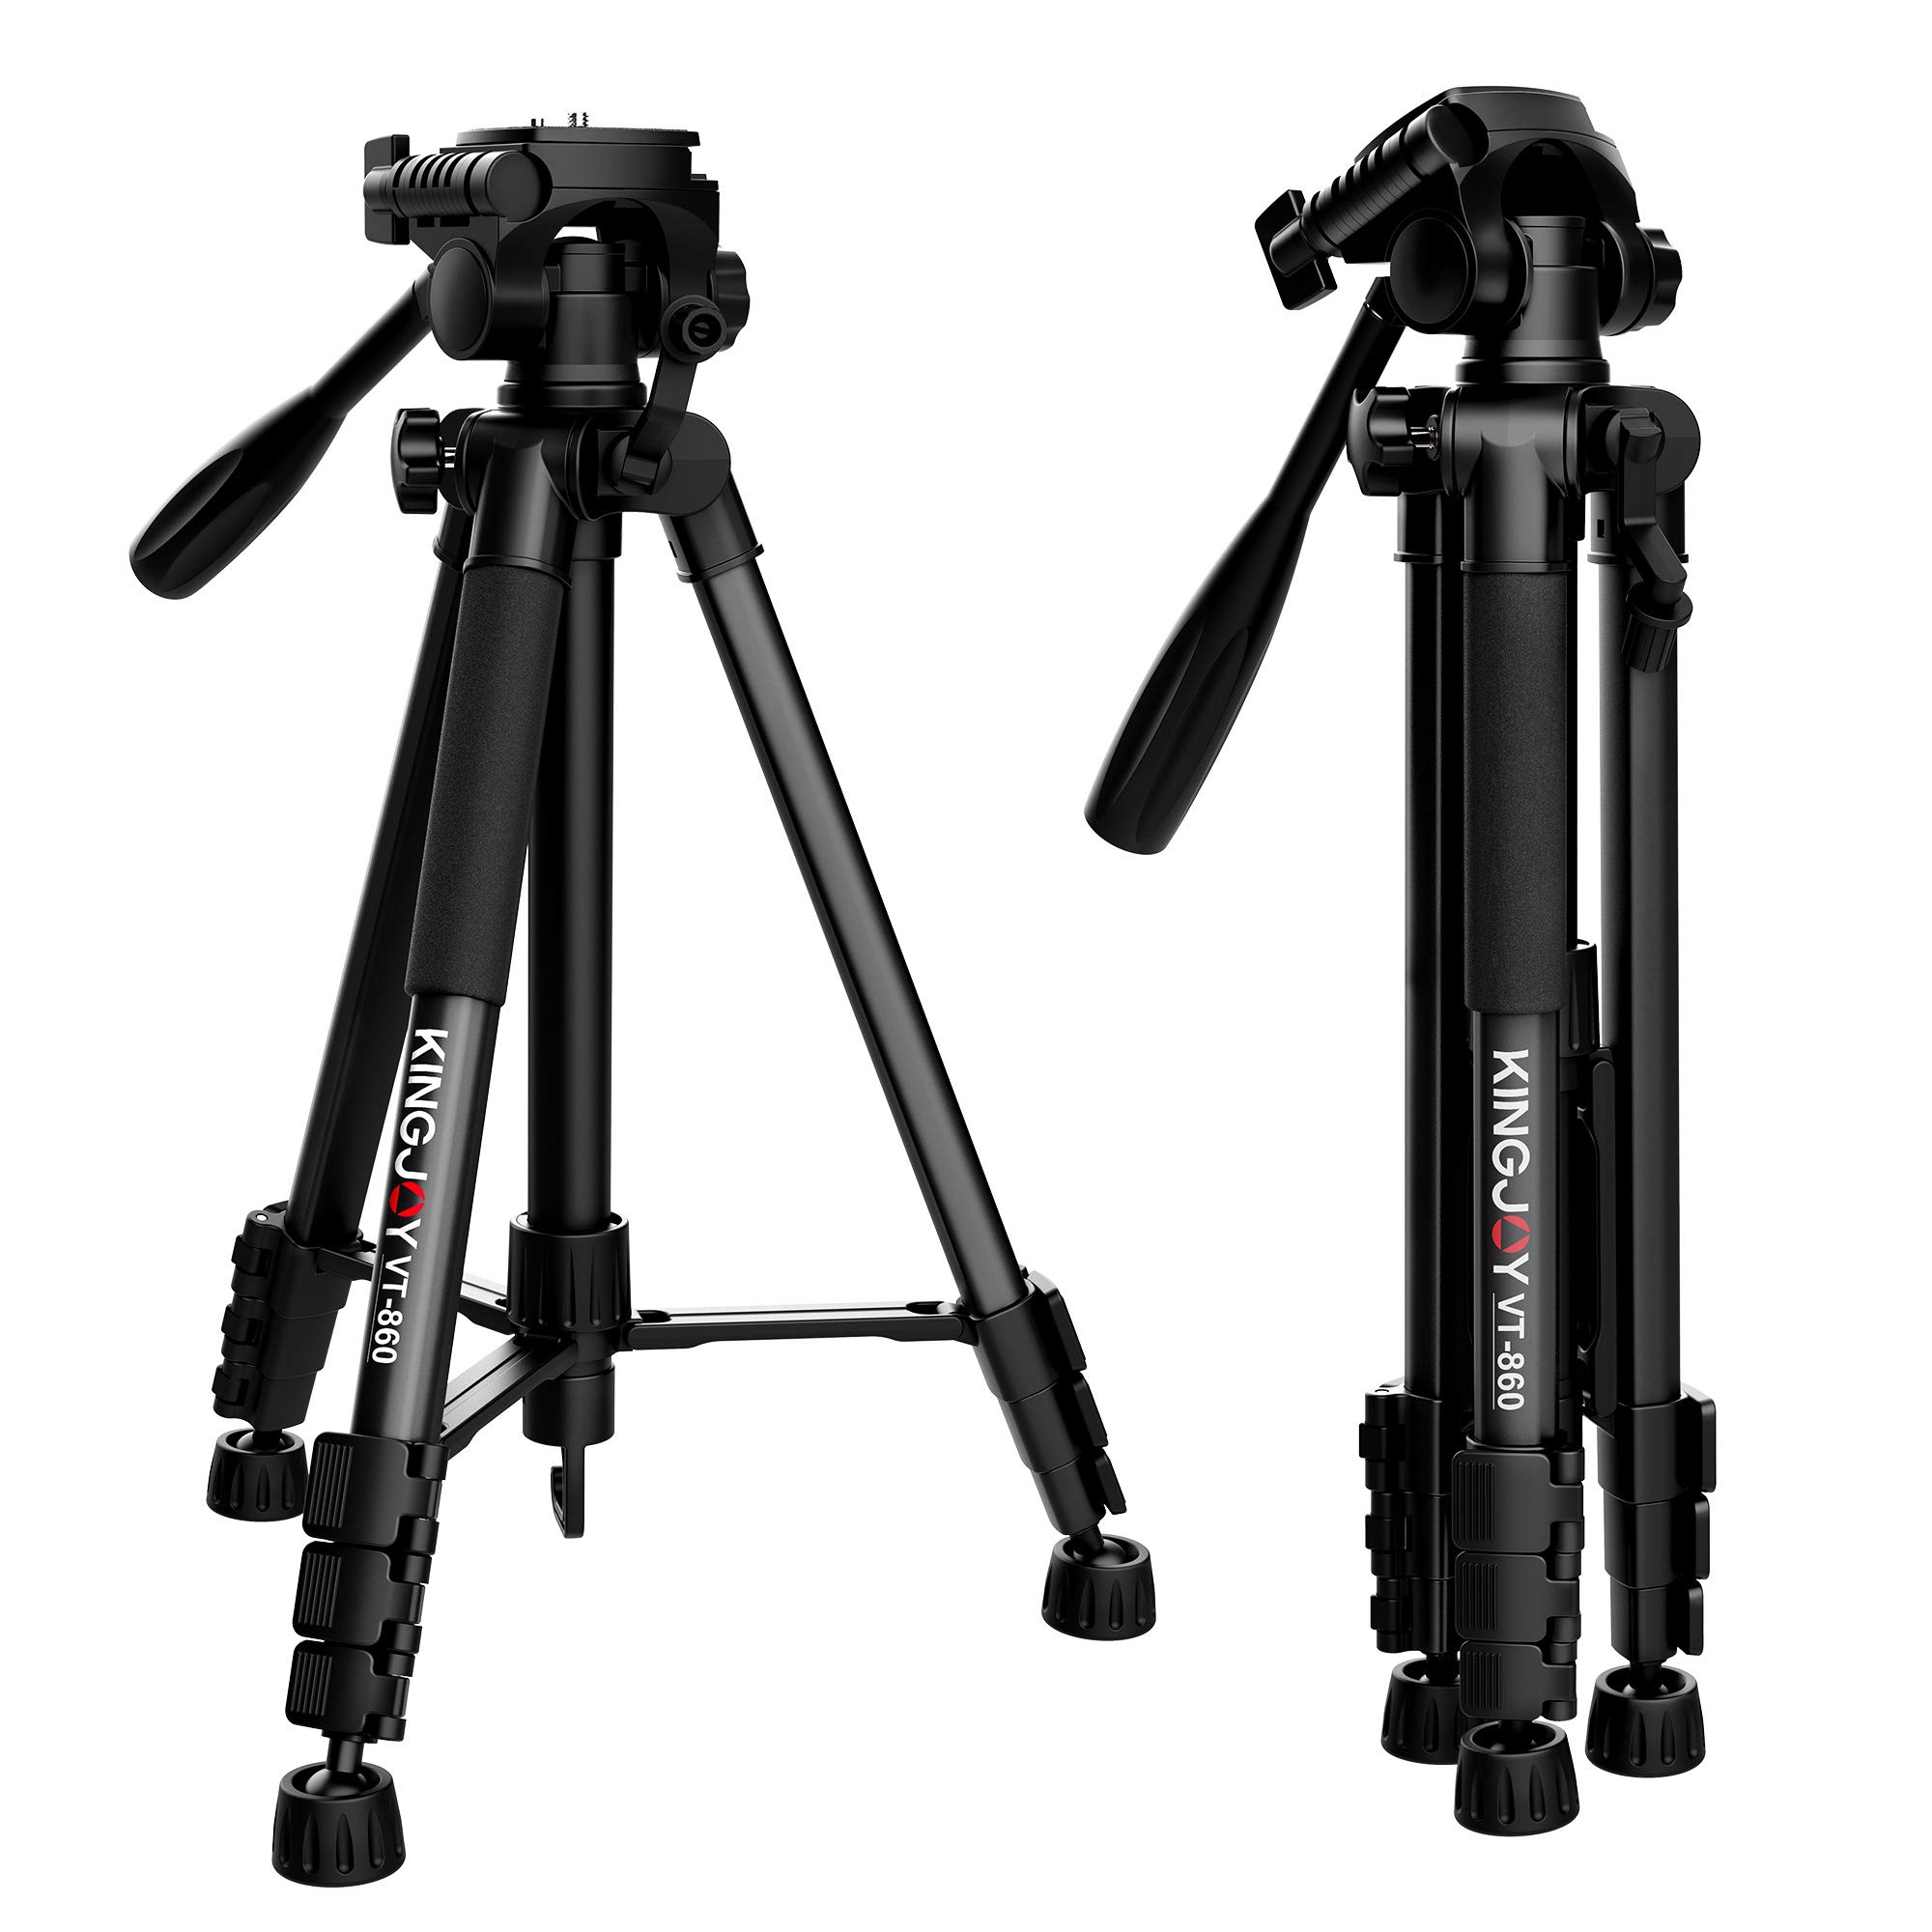 KINGJOY Travel Camera Tripod Kit, Lightweight Aluminum Tripods with Fluid Head for Photography Video Shooting, YouTube Videos, Live Webcasts, Support DSLR SLR Camcorder, VT-860 by KINGJOY